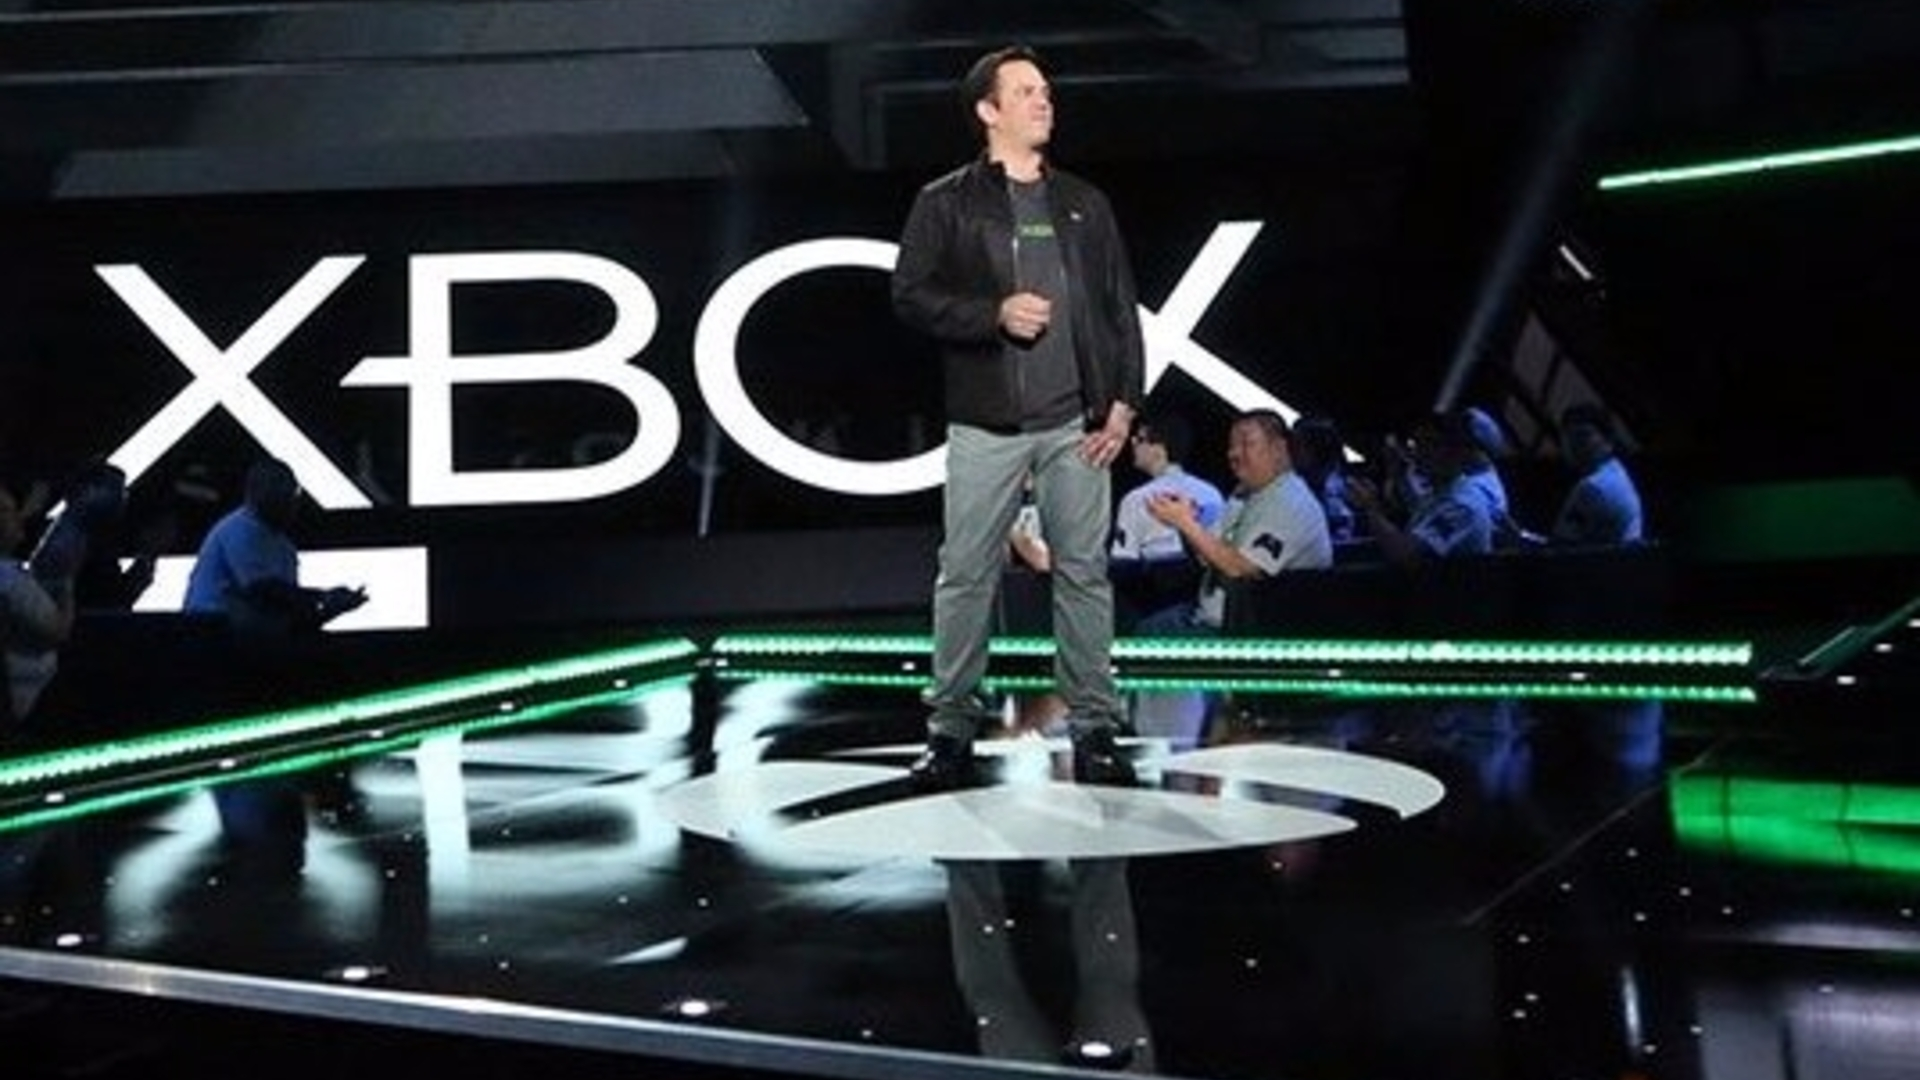 Xbox Boss Phil Spencer The Big Interview 1m Subcircuit Board Is Not Installed Solved Pokemom Youtube